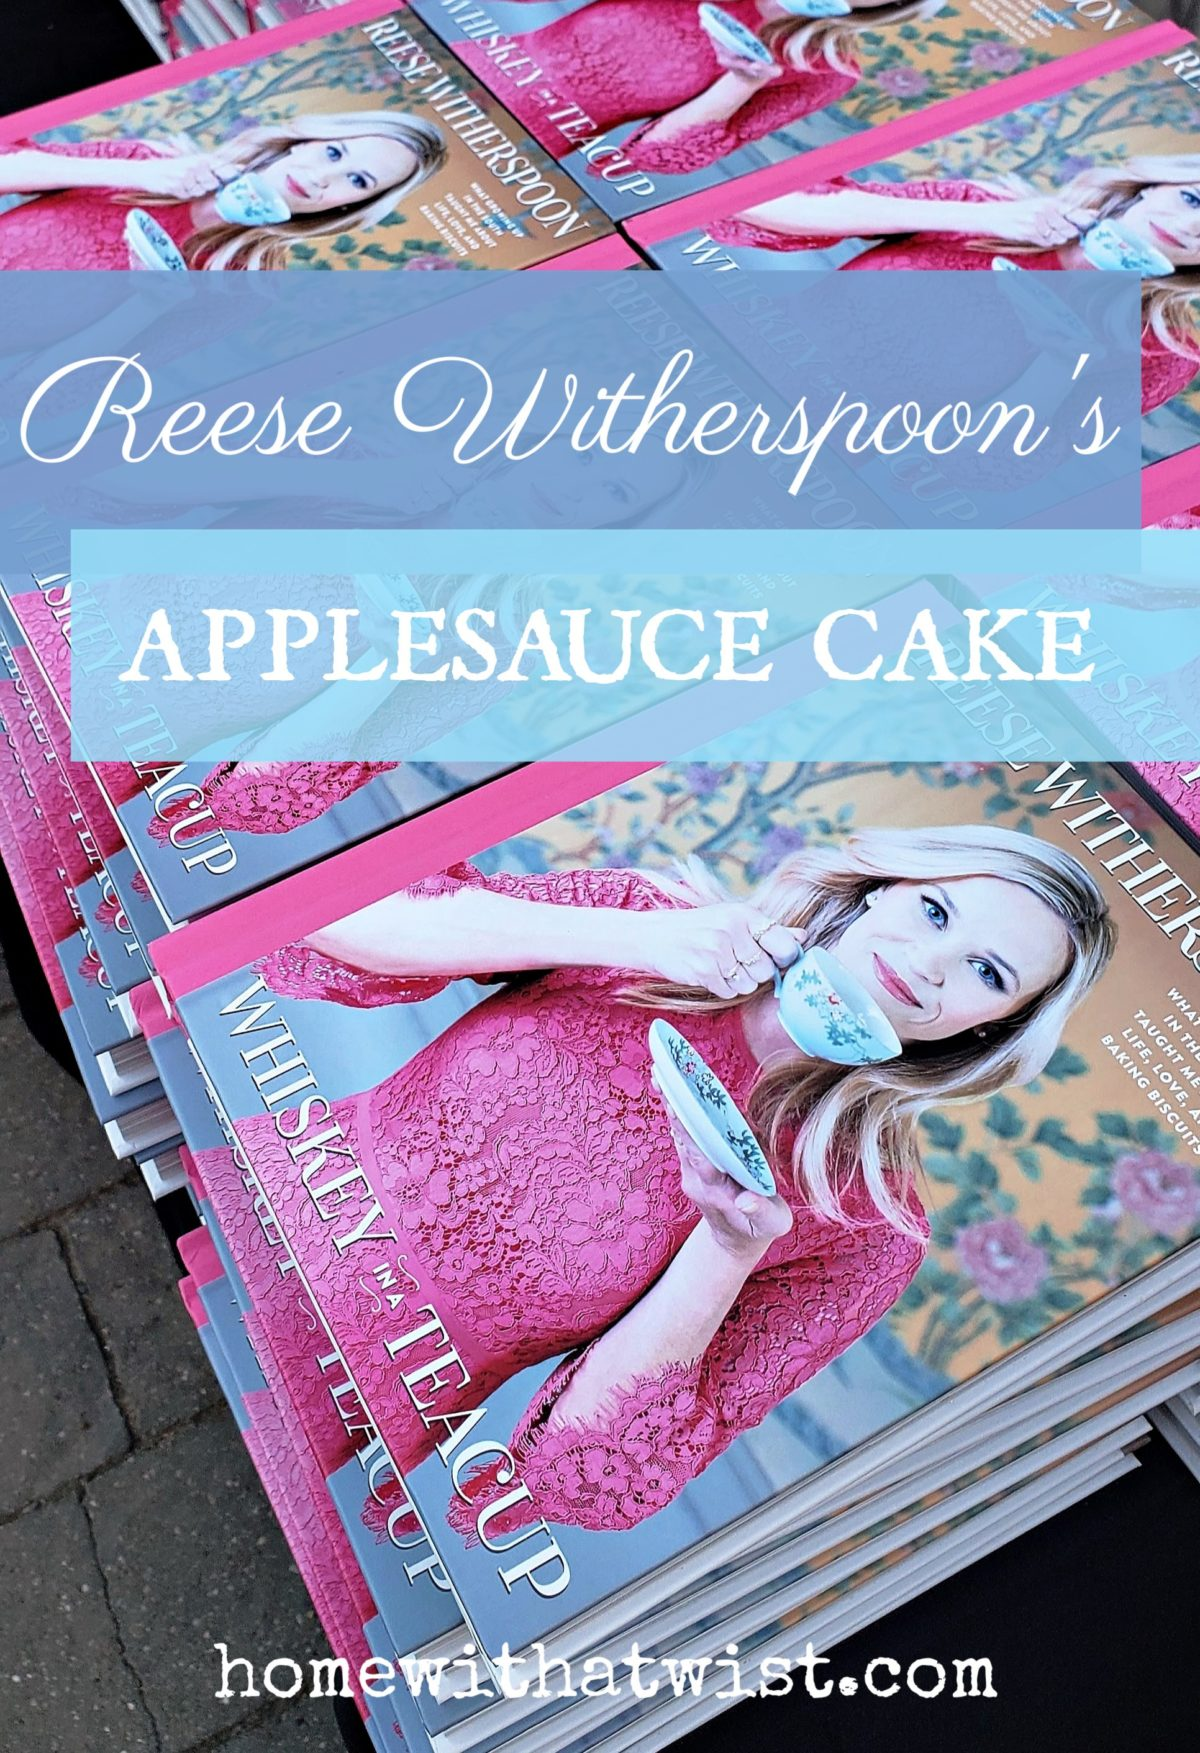 Reese Witherspoon's Applesauce Cake